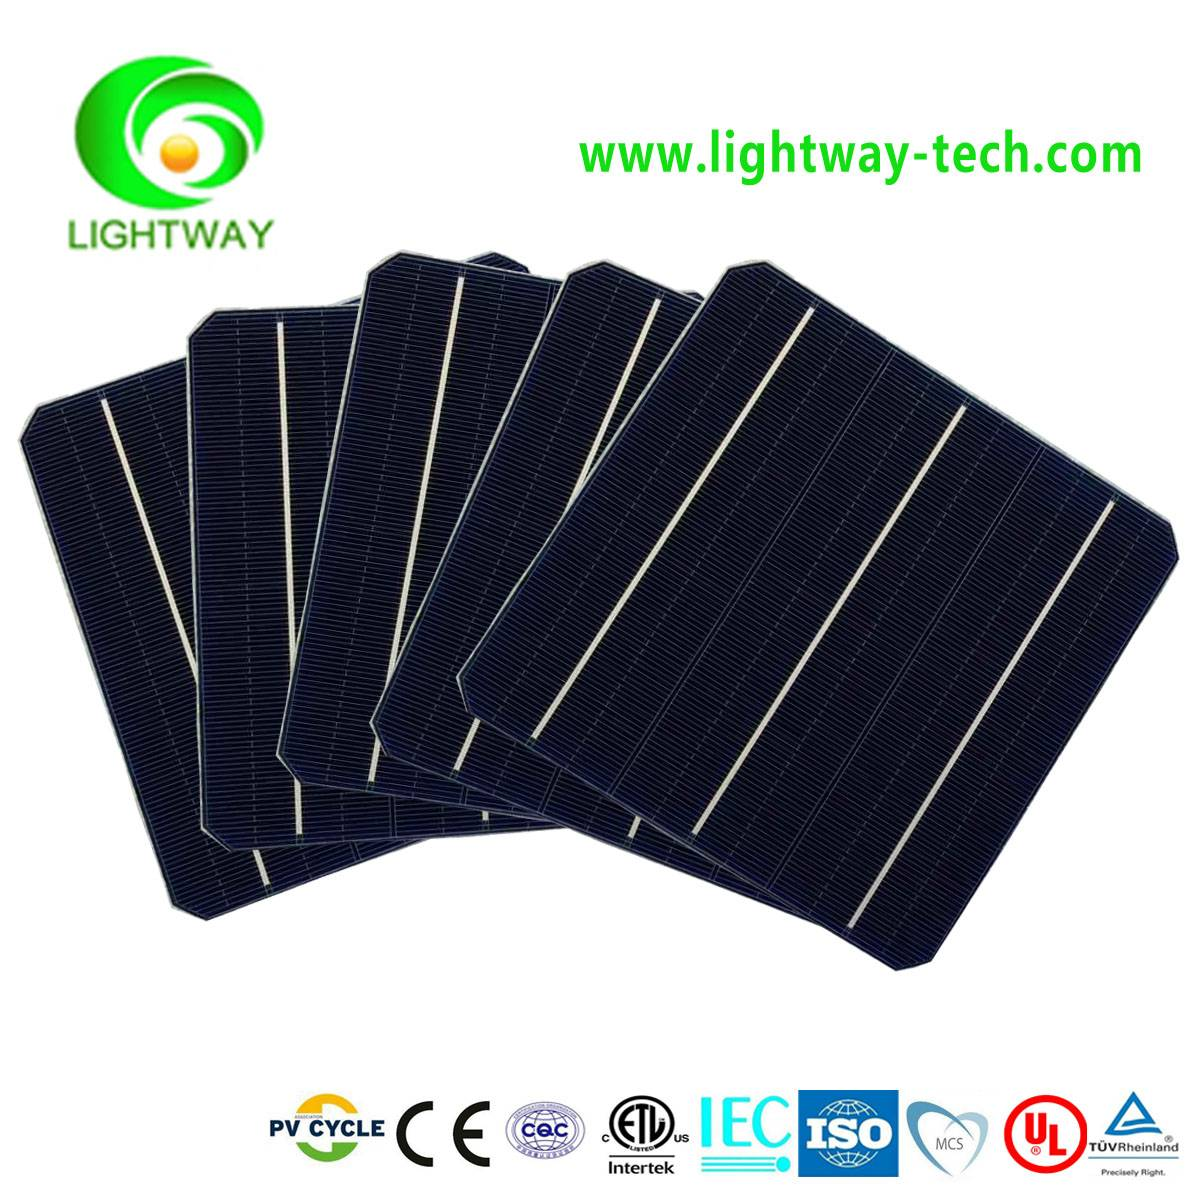 156x156 21.2% high efficiency monocrystalline silicon solar cell made in Taiwan